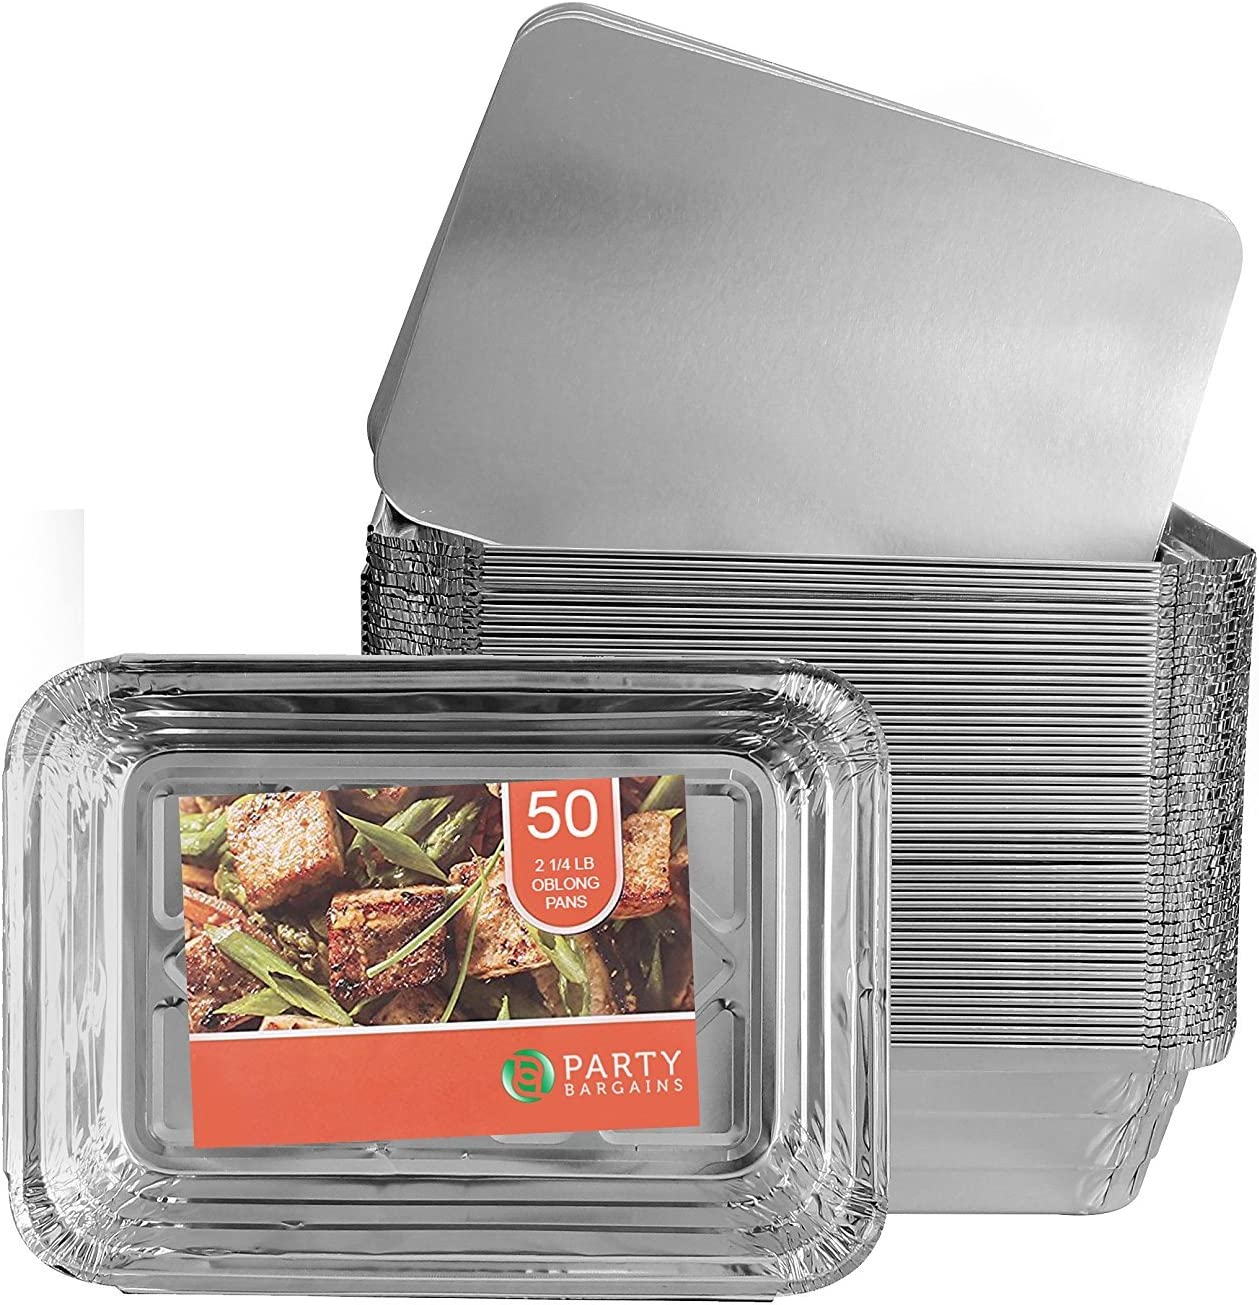 Party Bargains Aluminum Oblong Foil Pan Containers and Board Lids Set, 2.25 lb Capacity, 8.4inch x 5.9inch, Sets of Durable Quality Aluminum Foil Take-Out Pans. by Party Bargains